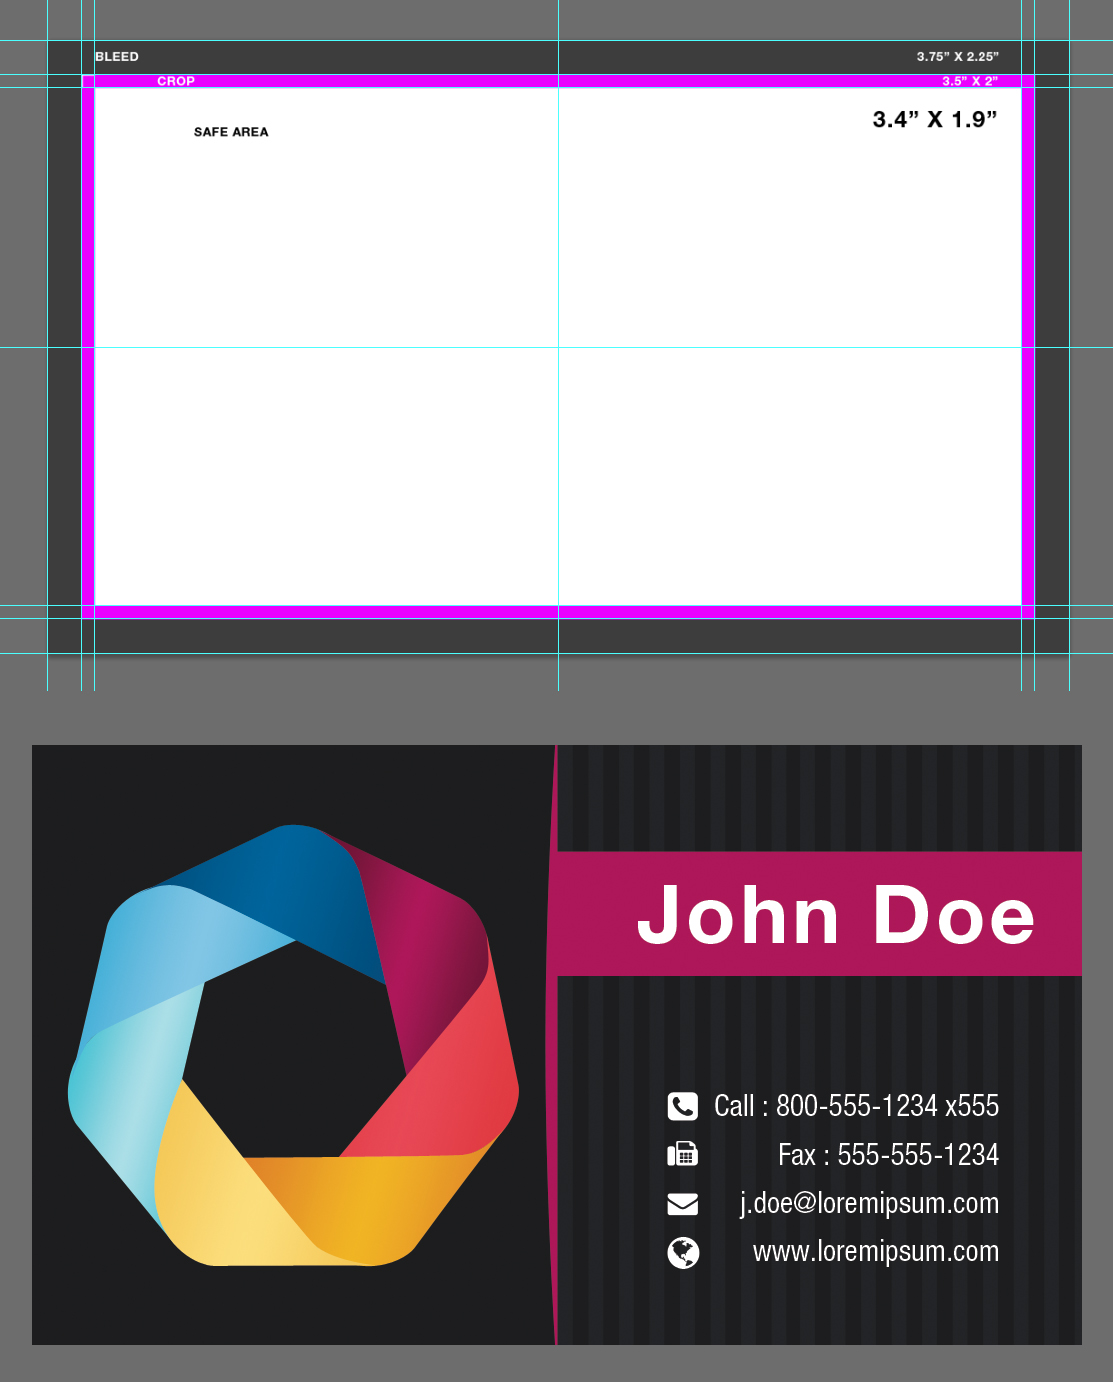 Blank Business Card Template PSD By Xxdigipxx On DeviantArt - Blank business card template free